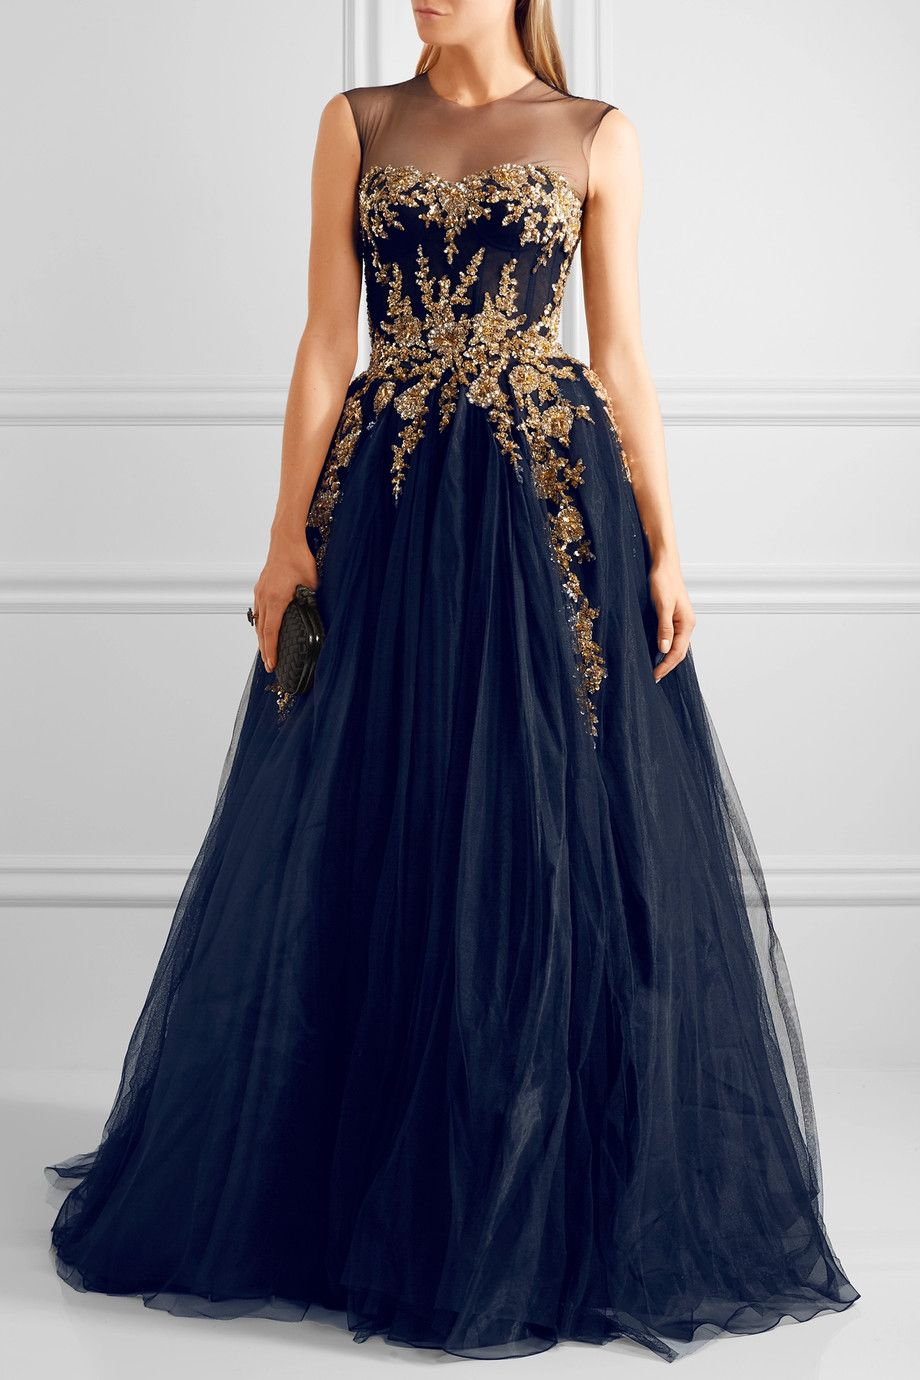 Navy Embellished Tulle Gown Reem Acra Navy And Gold Dress Maid Of Honour Dresses Blue And Gold Dress